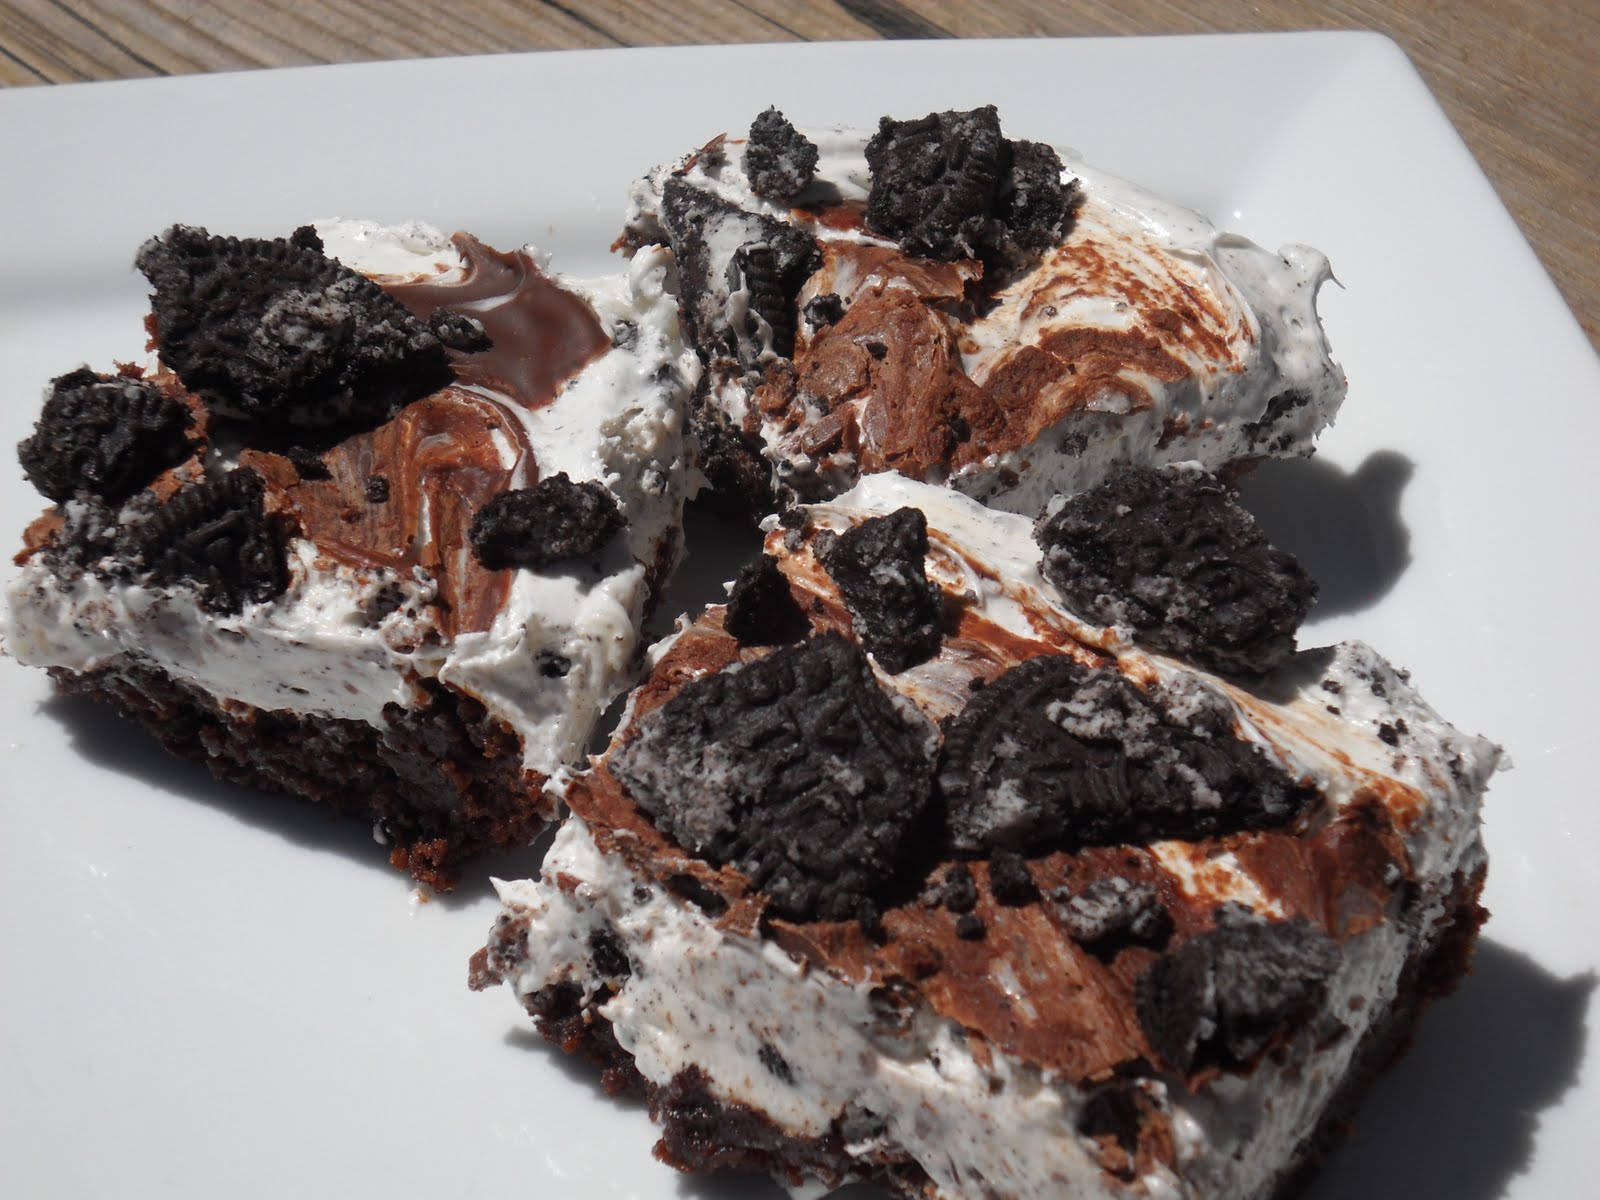 Mar 10,  · Easy Oreo Mint Chip Ice Cream Cake. I love the idea of serving ice cream in fun ways. And this one is just that. A fun and easy no-bake mint chip ice cream cake!